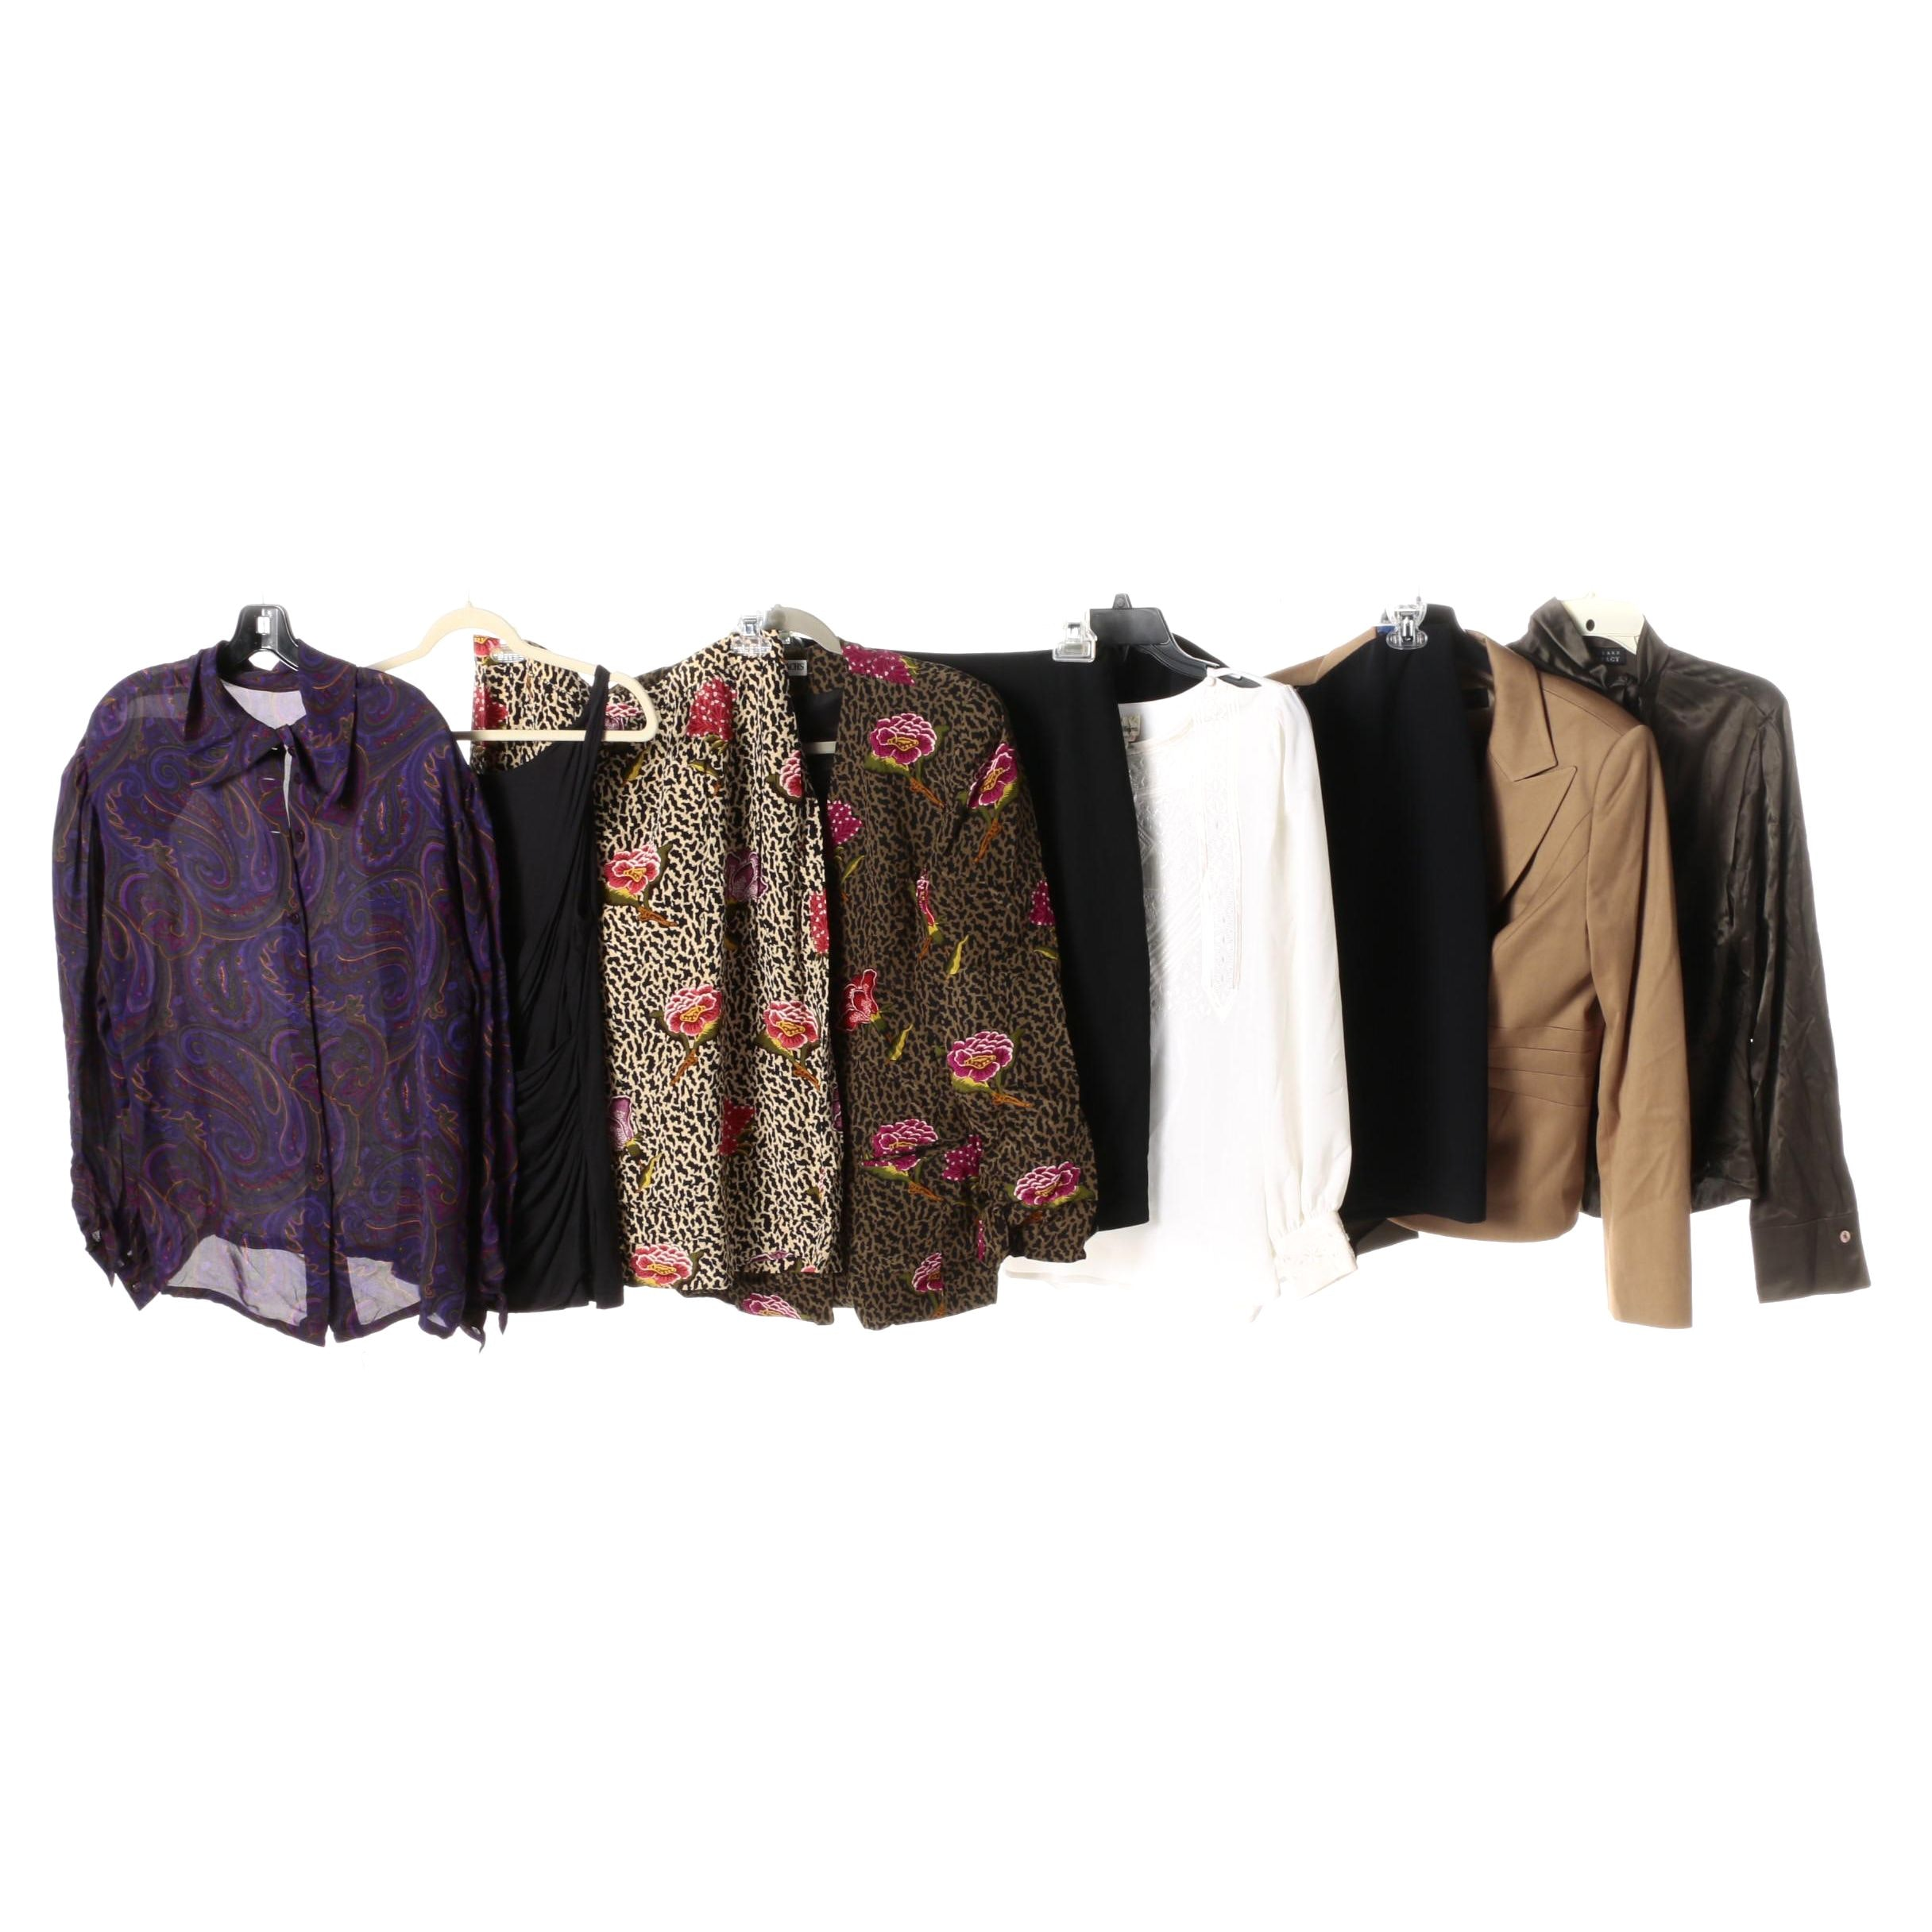 Women's Blouses, Suiting Separates and Skirt Suit Including Escada